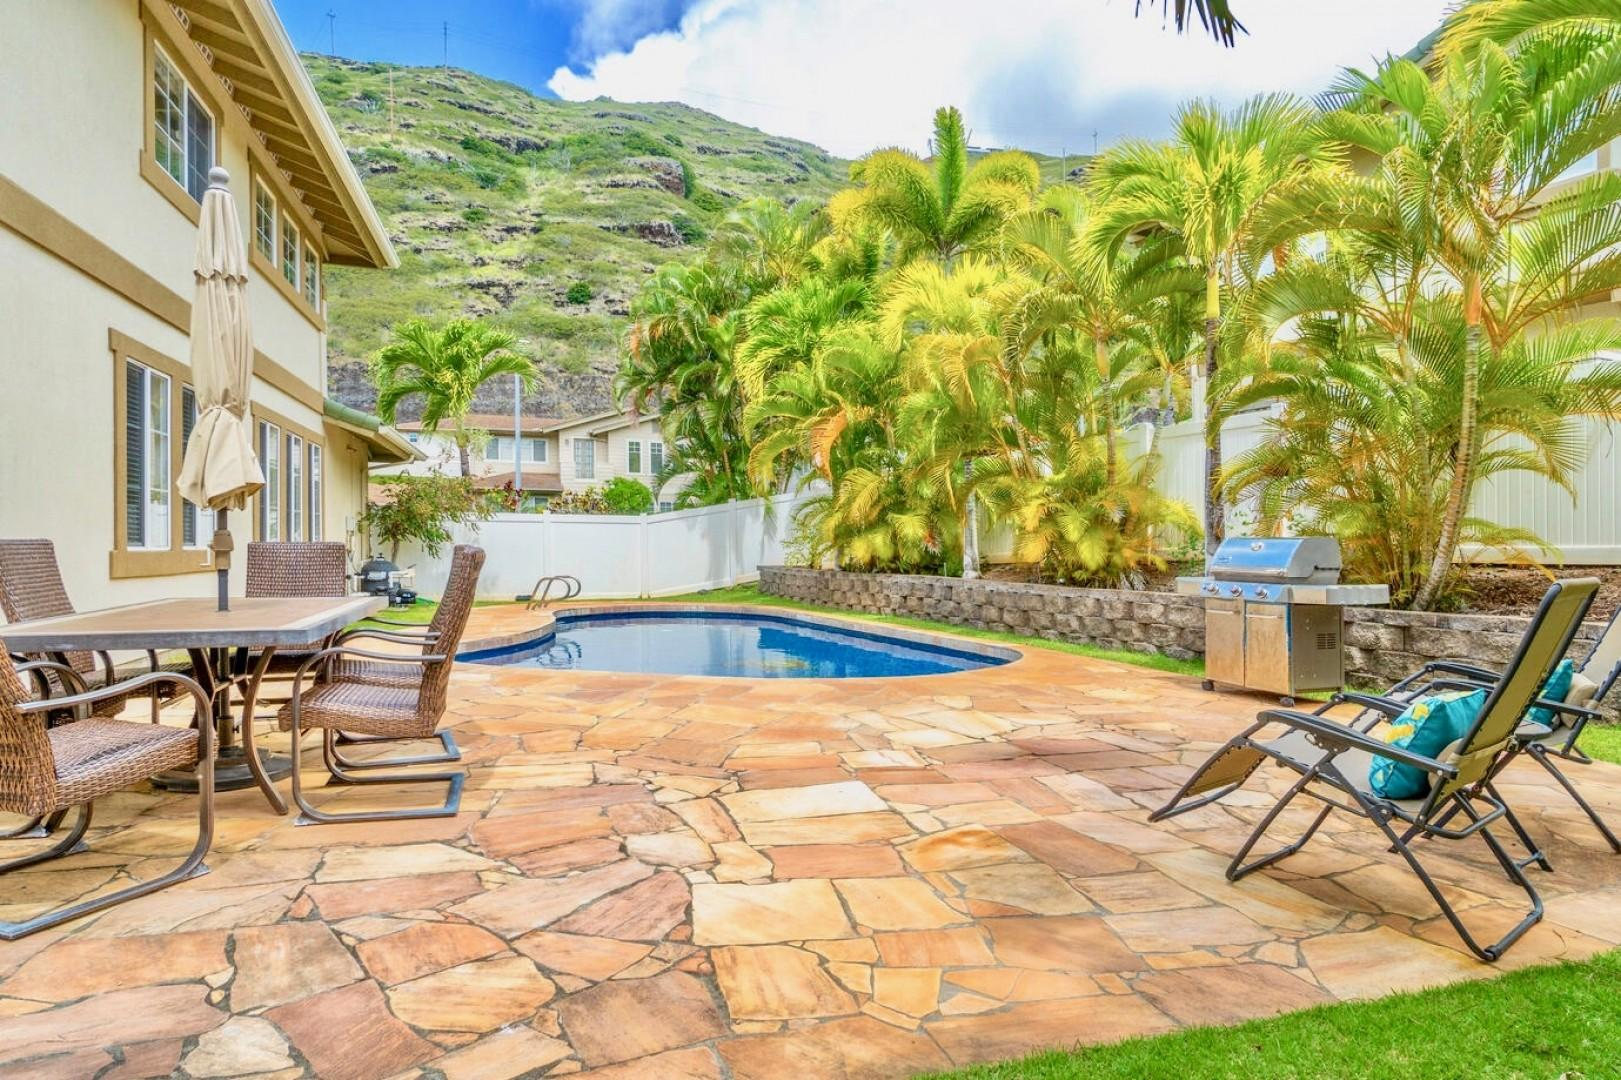 Pool deck with large private saltwater pool